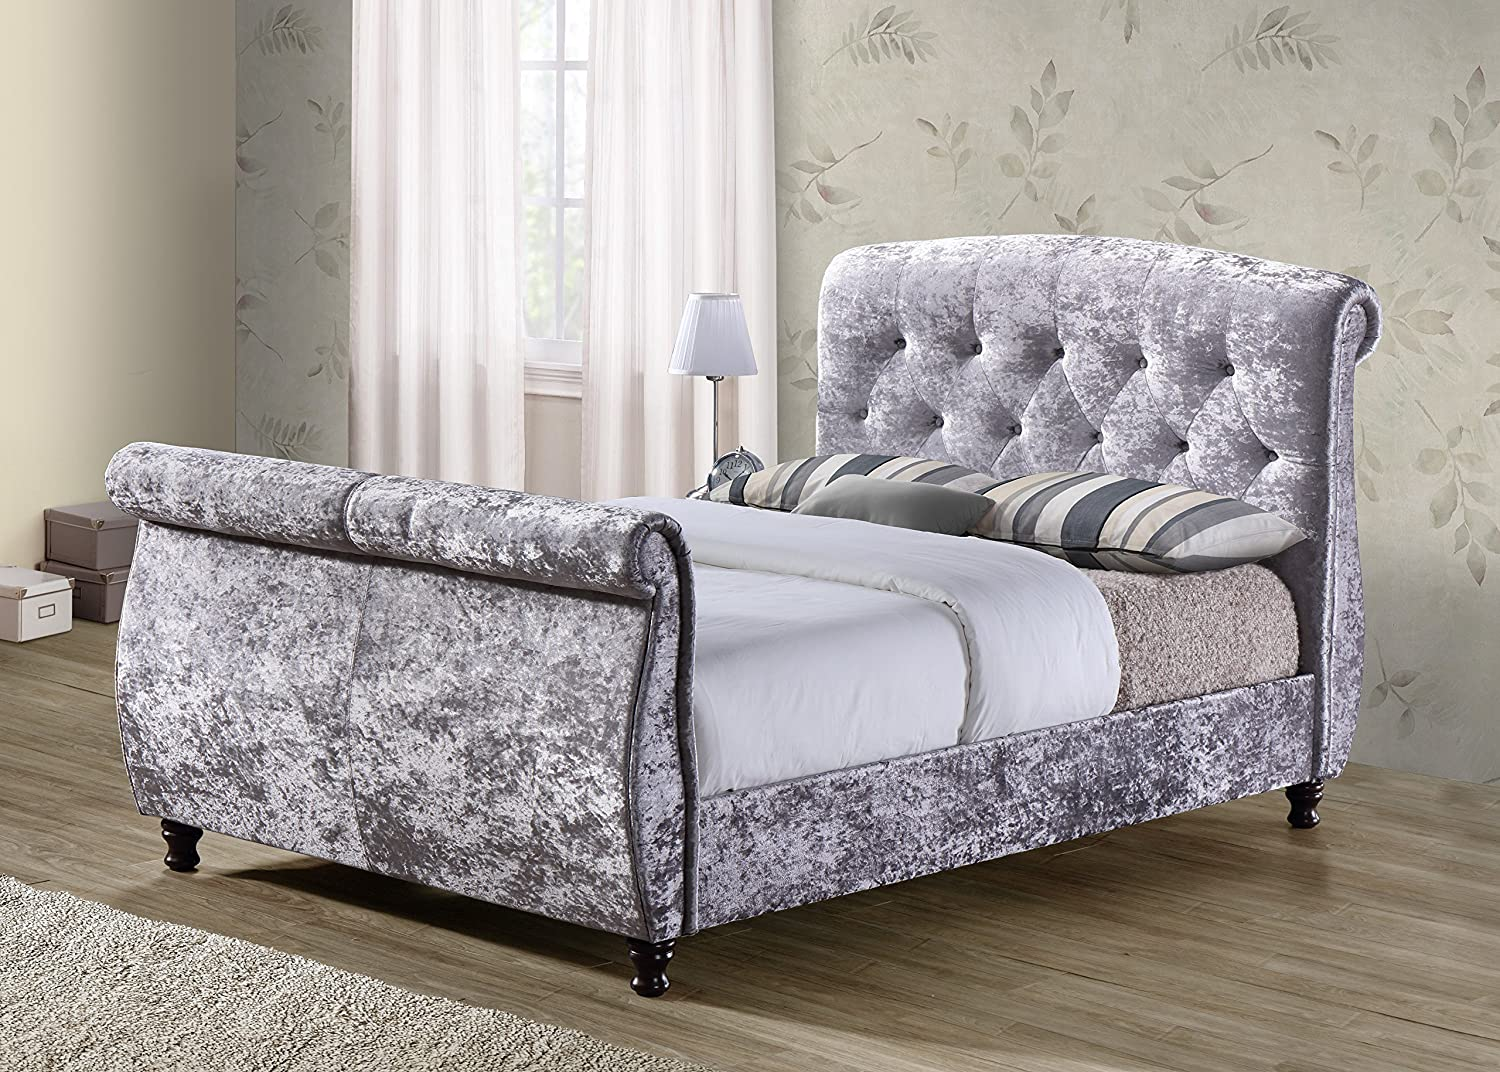 Birlea Furniture Toulouse Textured Fabric Sleigh-Bed, 6 ft, Super ...